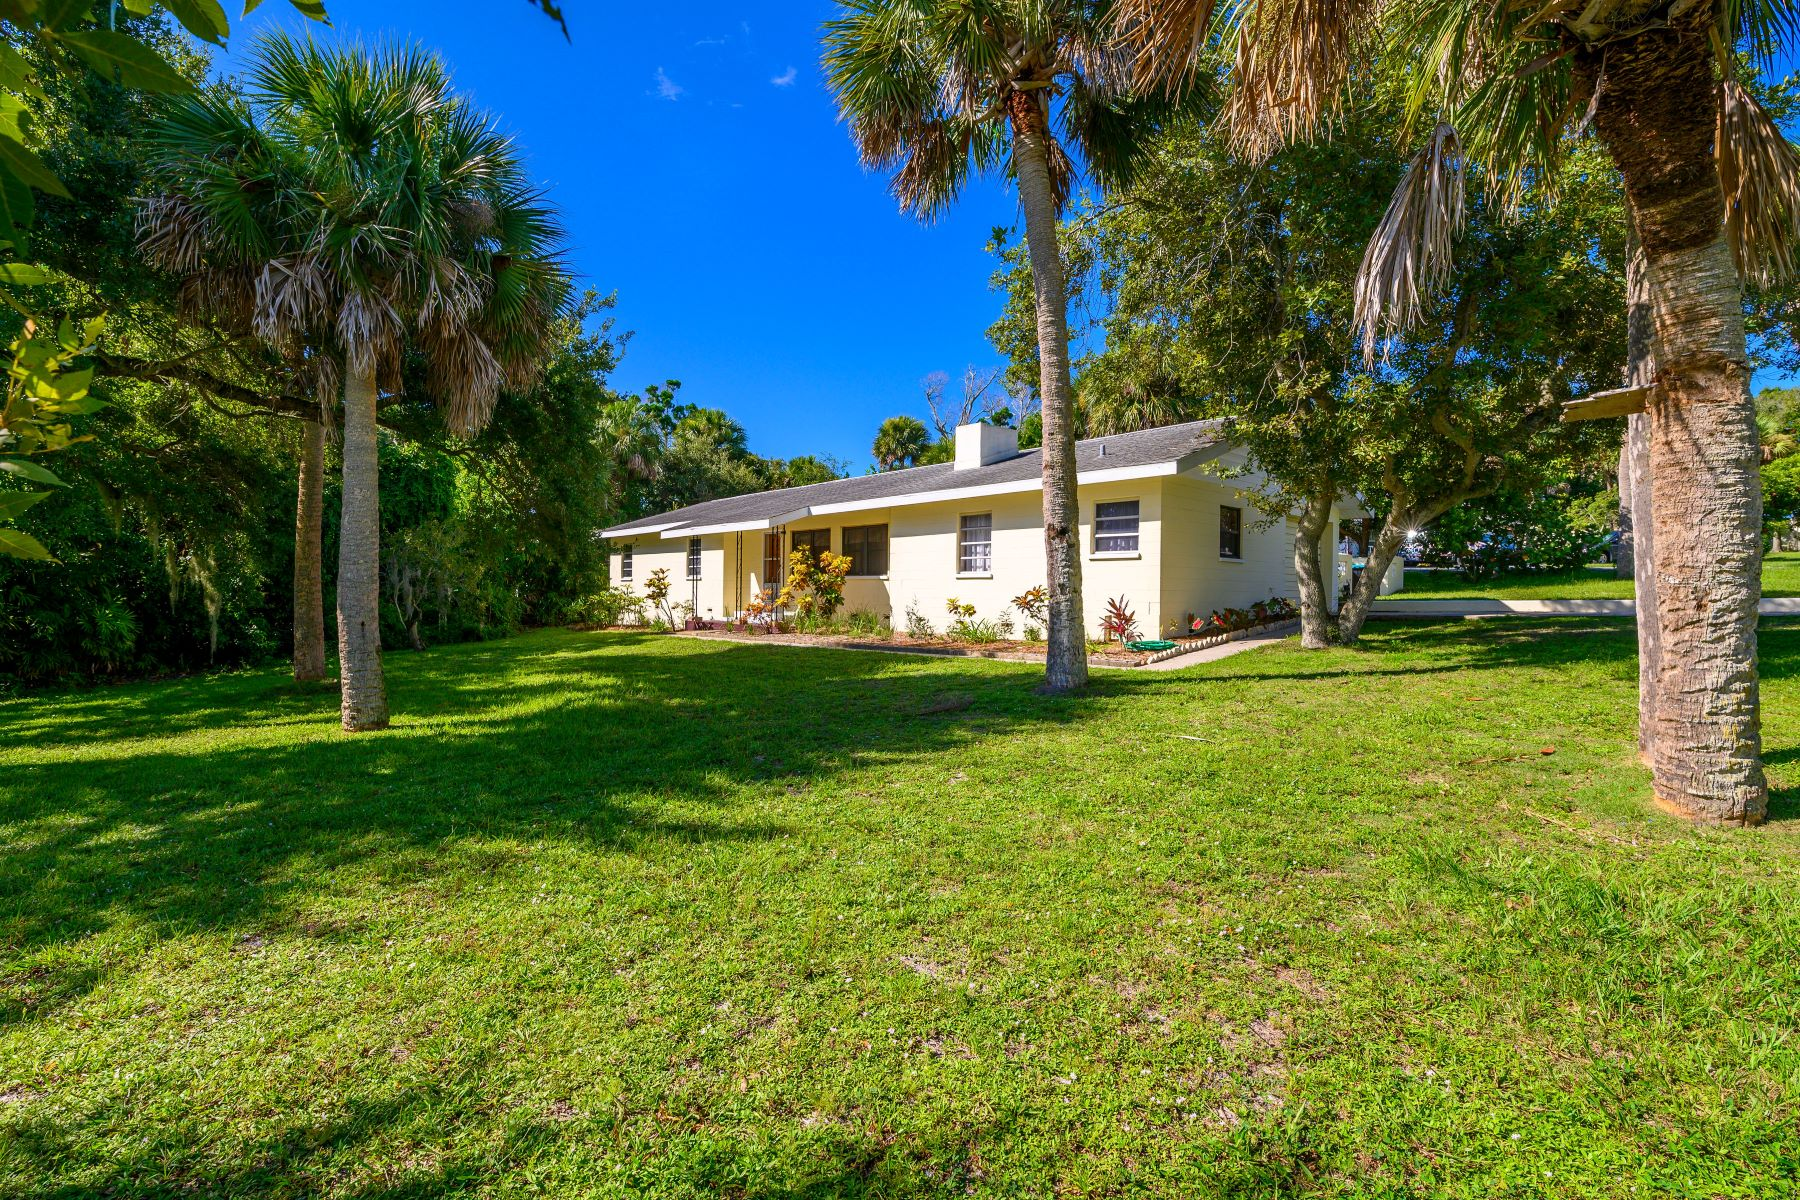 Single Family Homes for Sale at Charming Home Nestled in Unique Riverfront Community 1419 Anglers Ne Drive Palm Bay, Florida 32905 United States